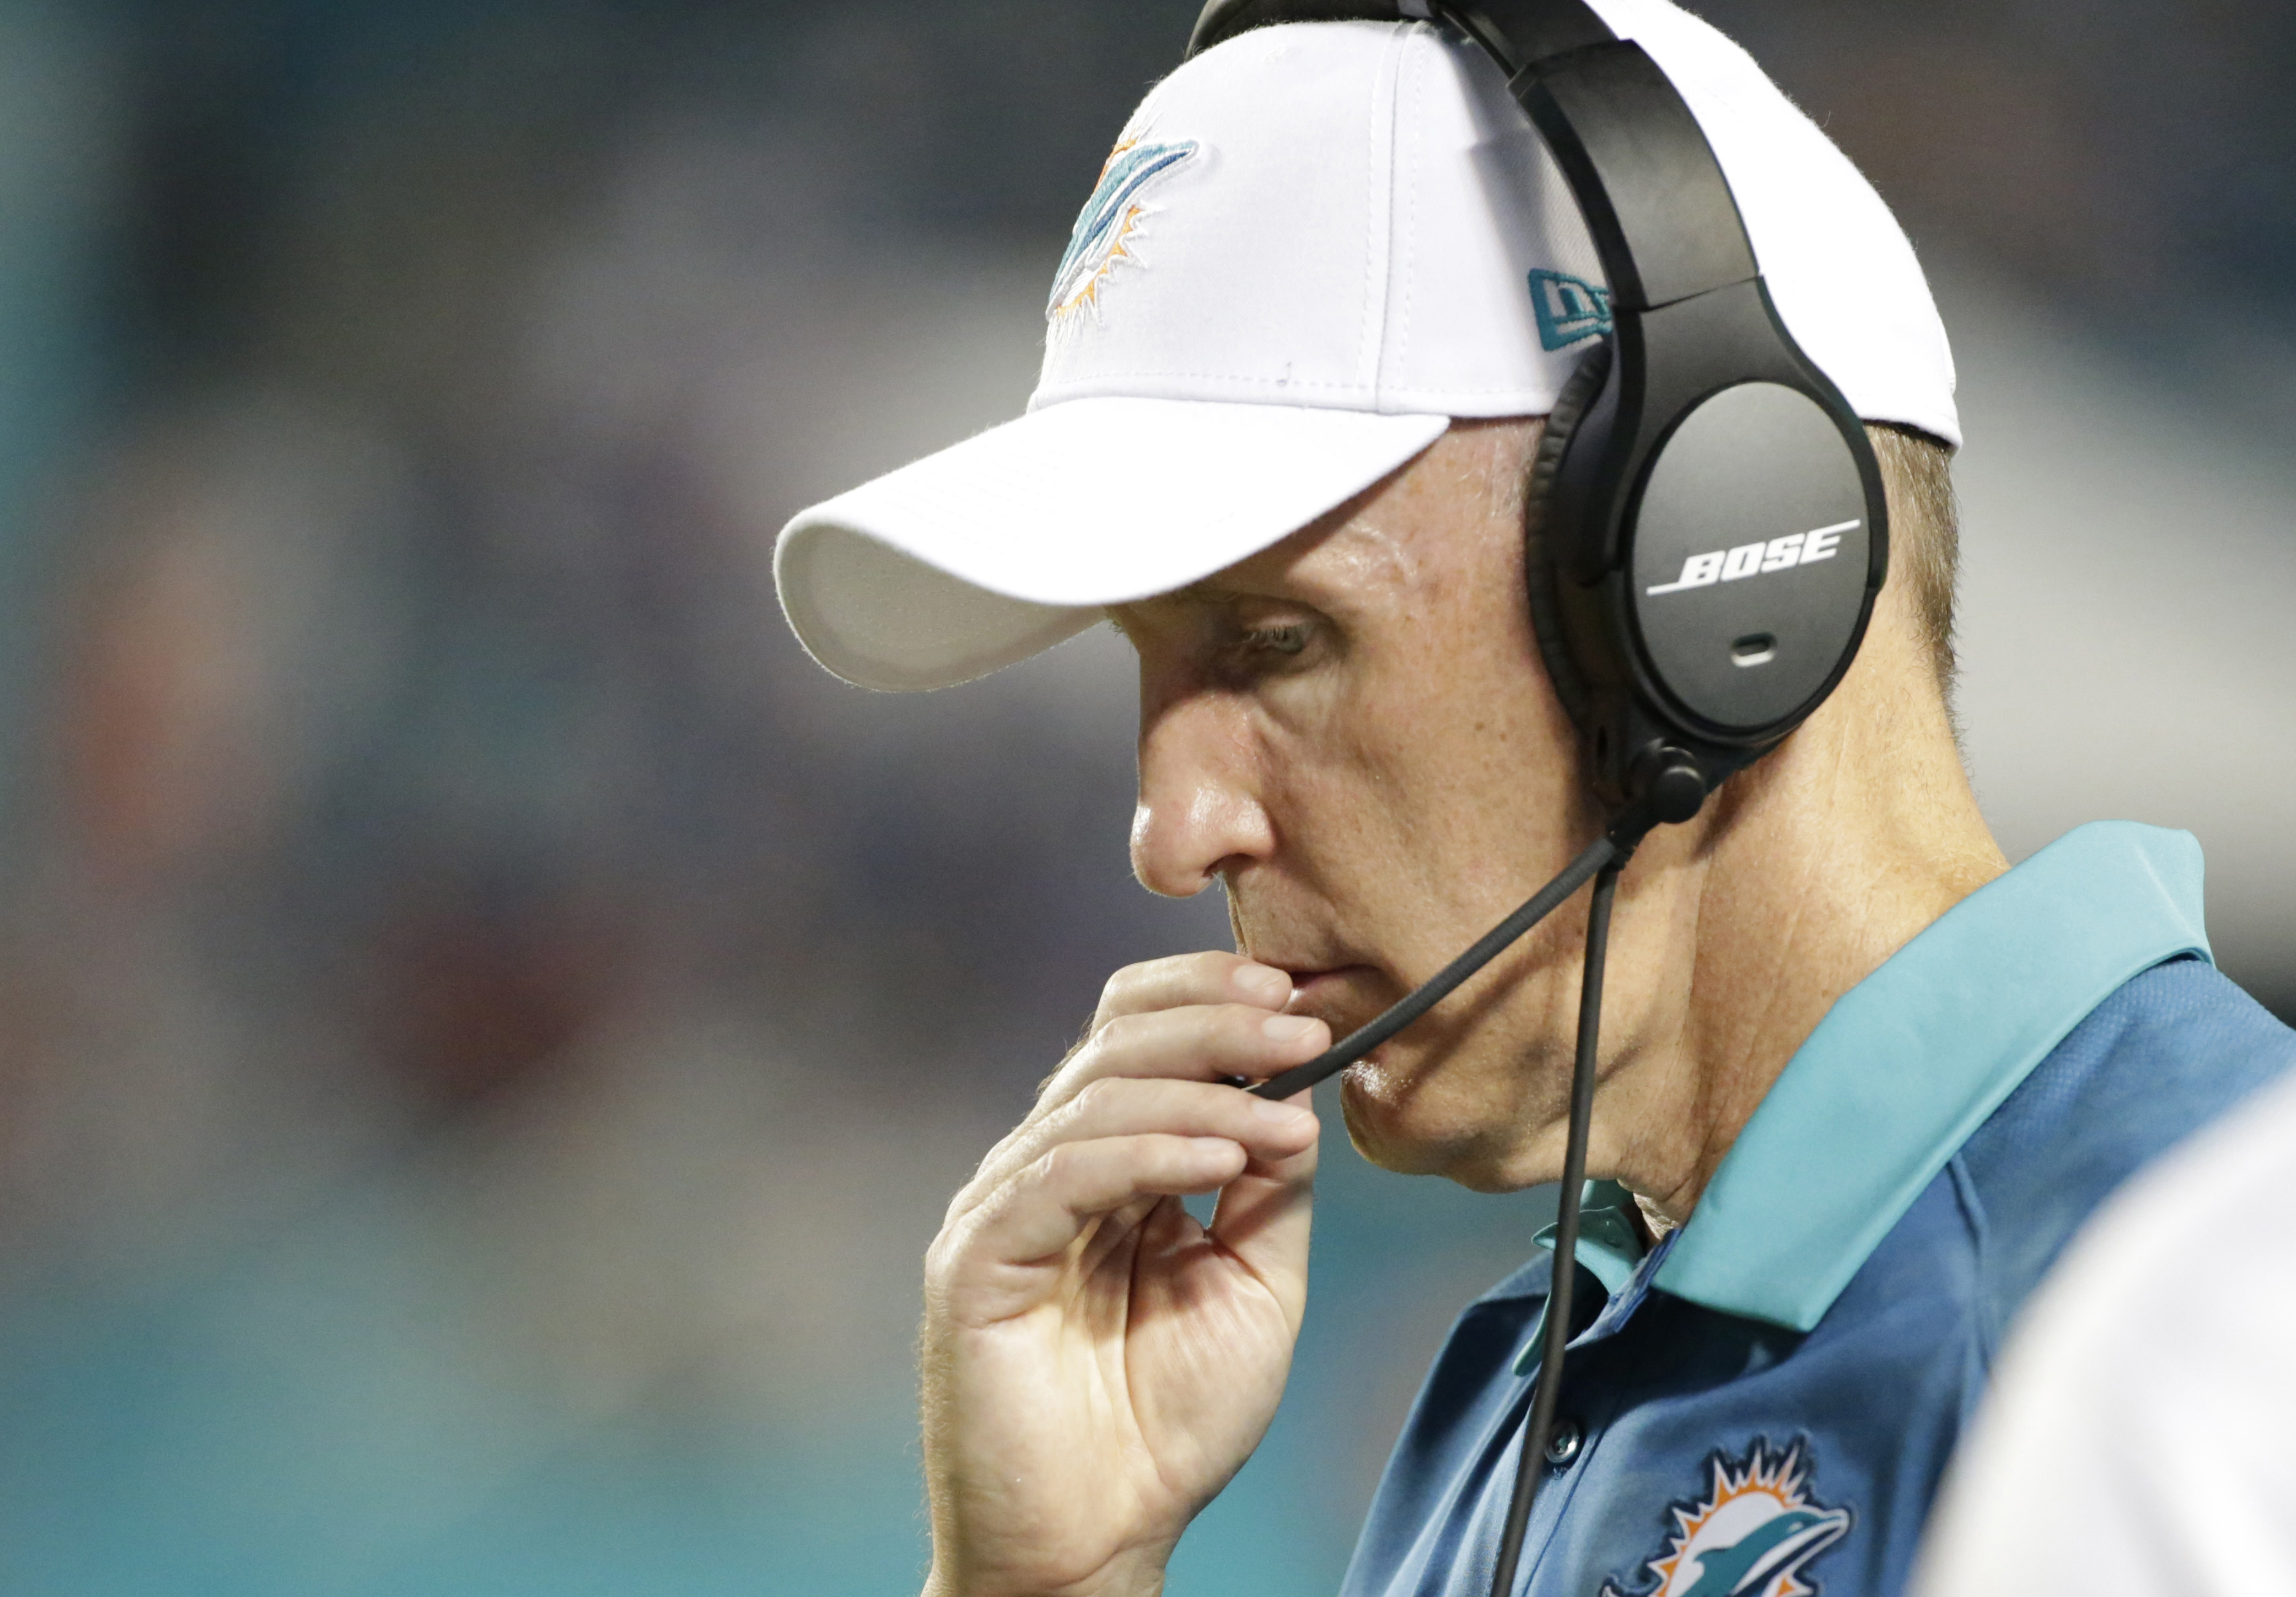 Miami Dolphins head coach Joe Philbin looks down during the second half of an NFL football game against the Buffalo Bills, Sunday, Sept. 27, 2015 in Miami Gardens, Fla. The Bills defeated the Dolphins 41-14. (AP Photo/Wilfredo Lee)